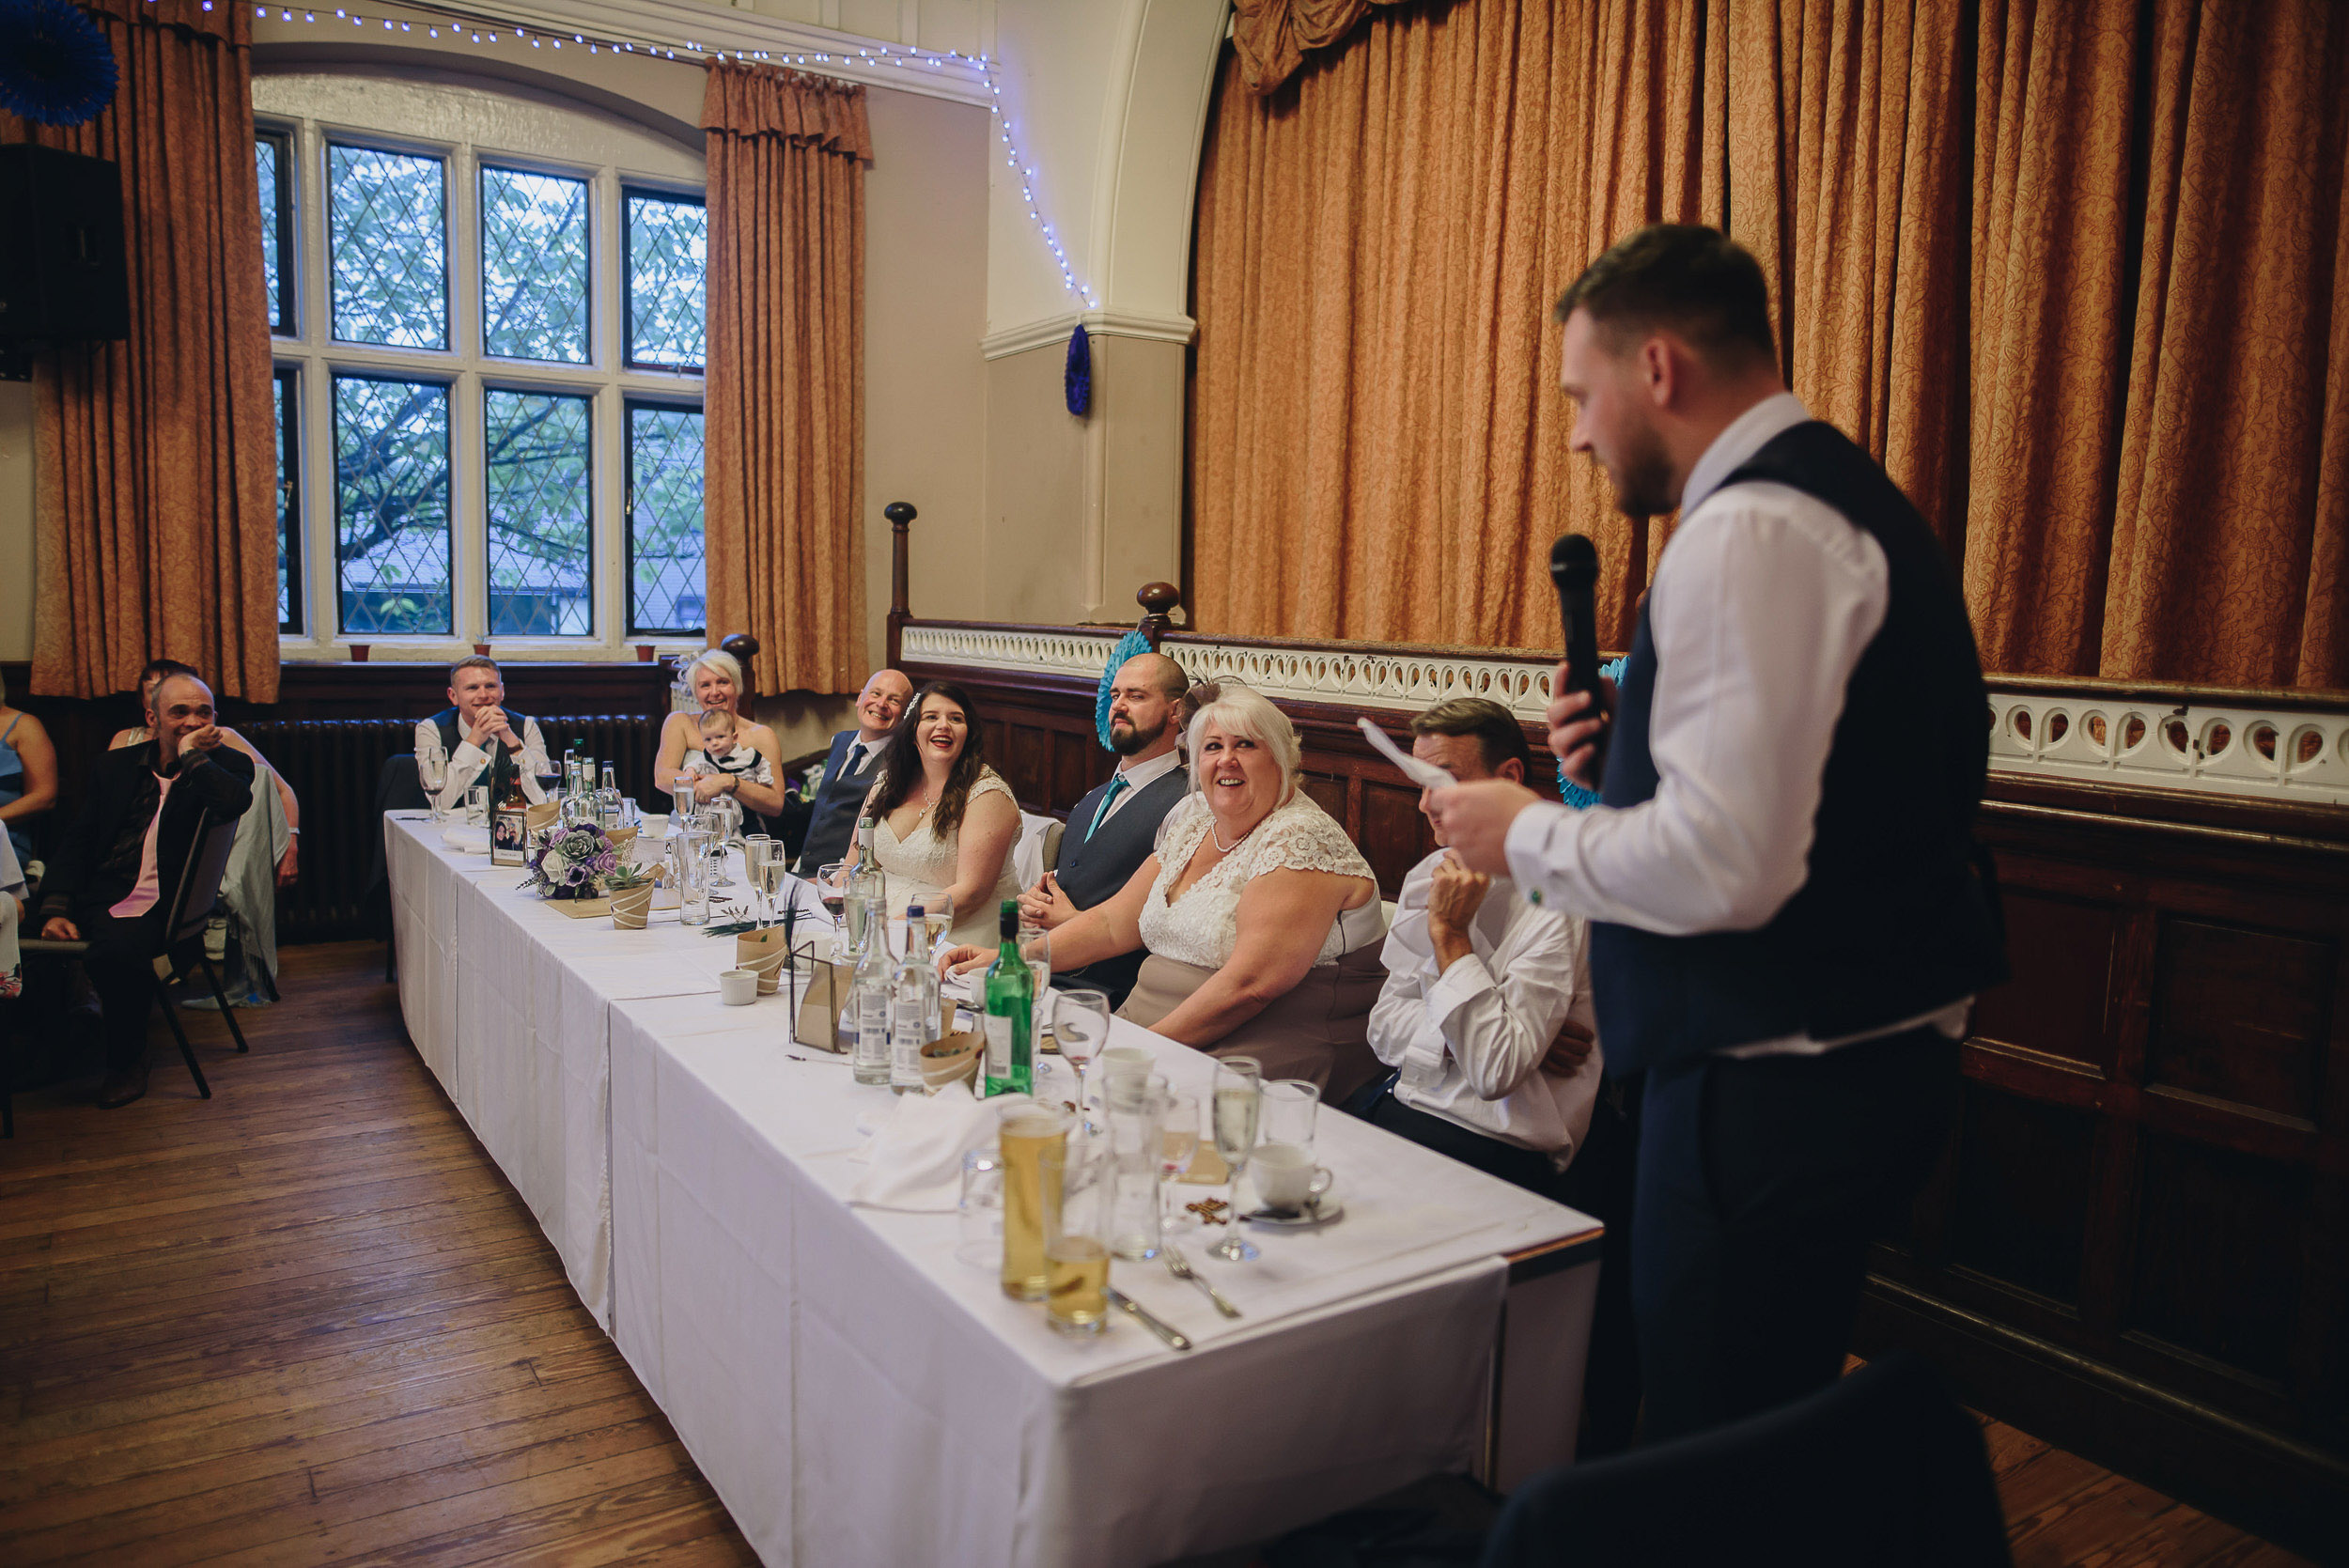 Smithills-hall-wedding-manchester-the-barlow-edgworth-hadfield-104.jpg